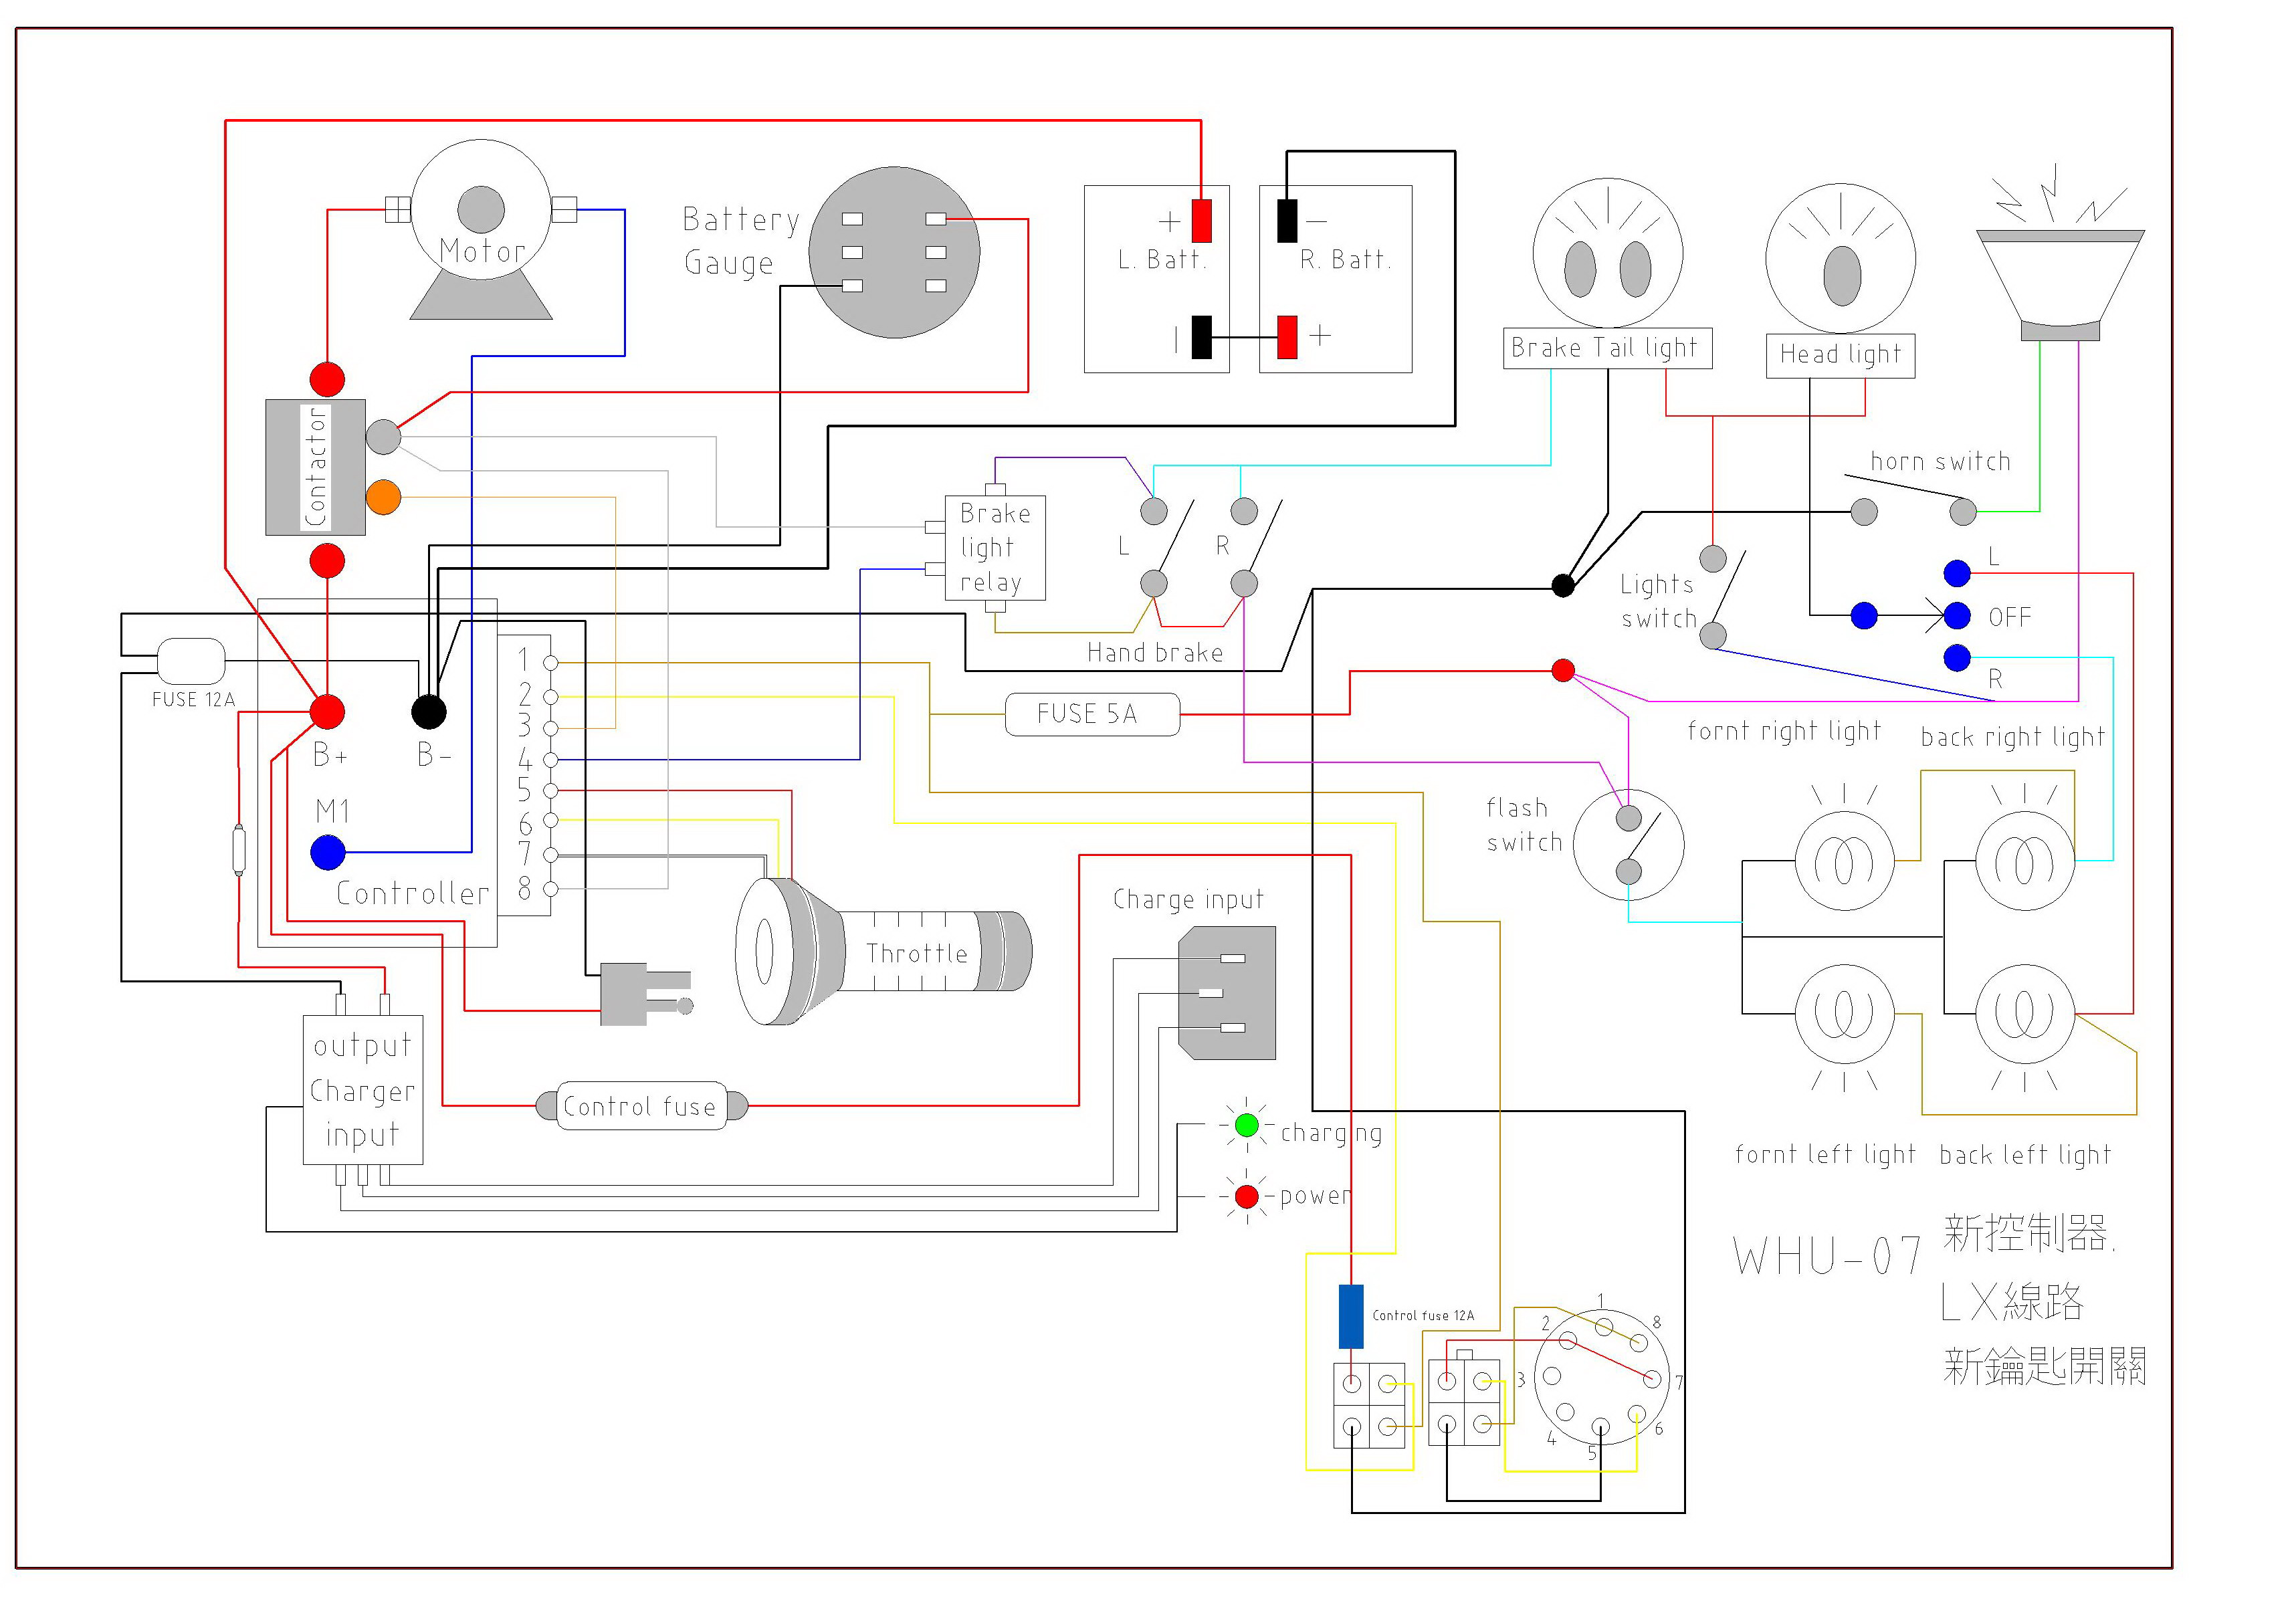 oe_0995] electric scooter esc wiring diagram free diagram  eopsy gious itive xolia mohammedshrine librar wiring 101